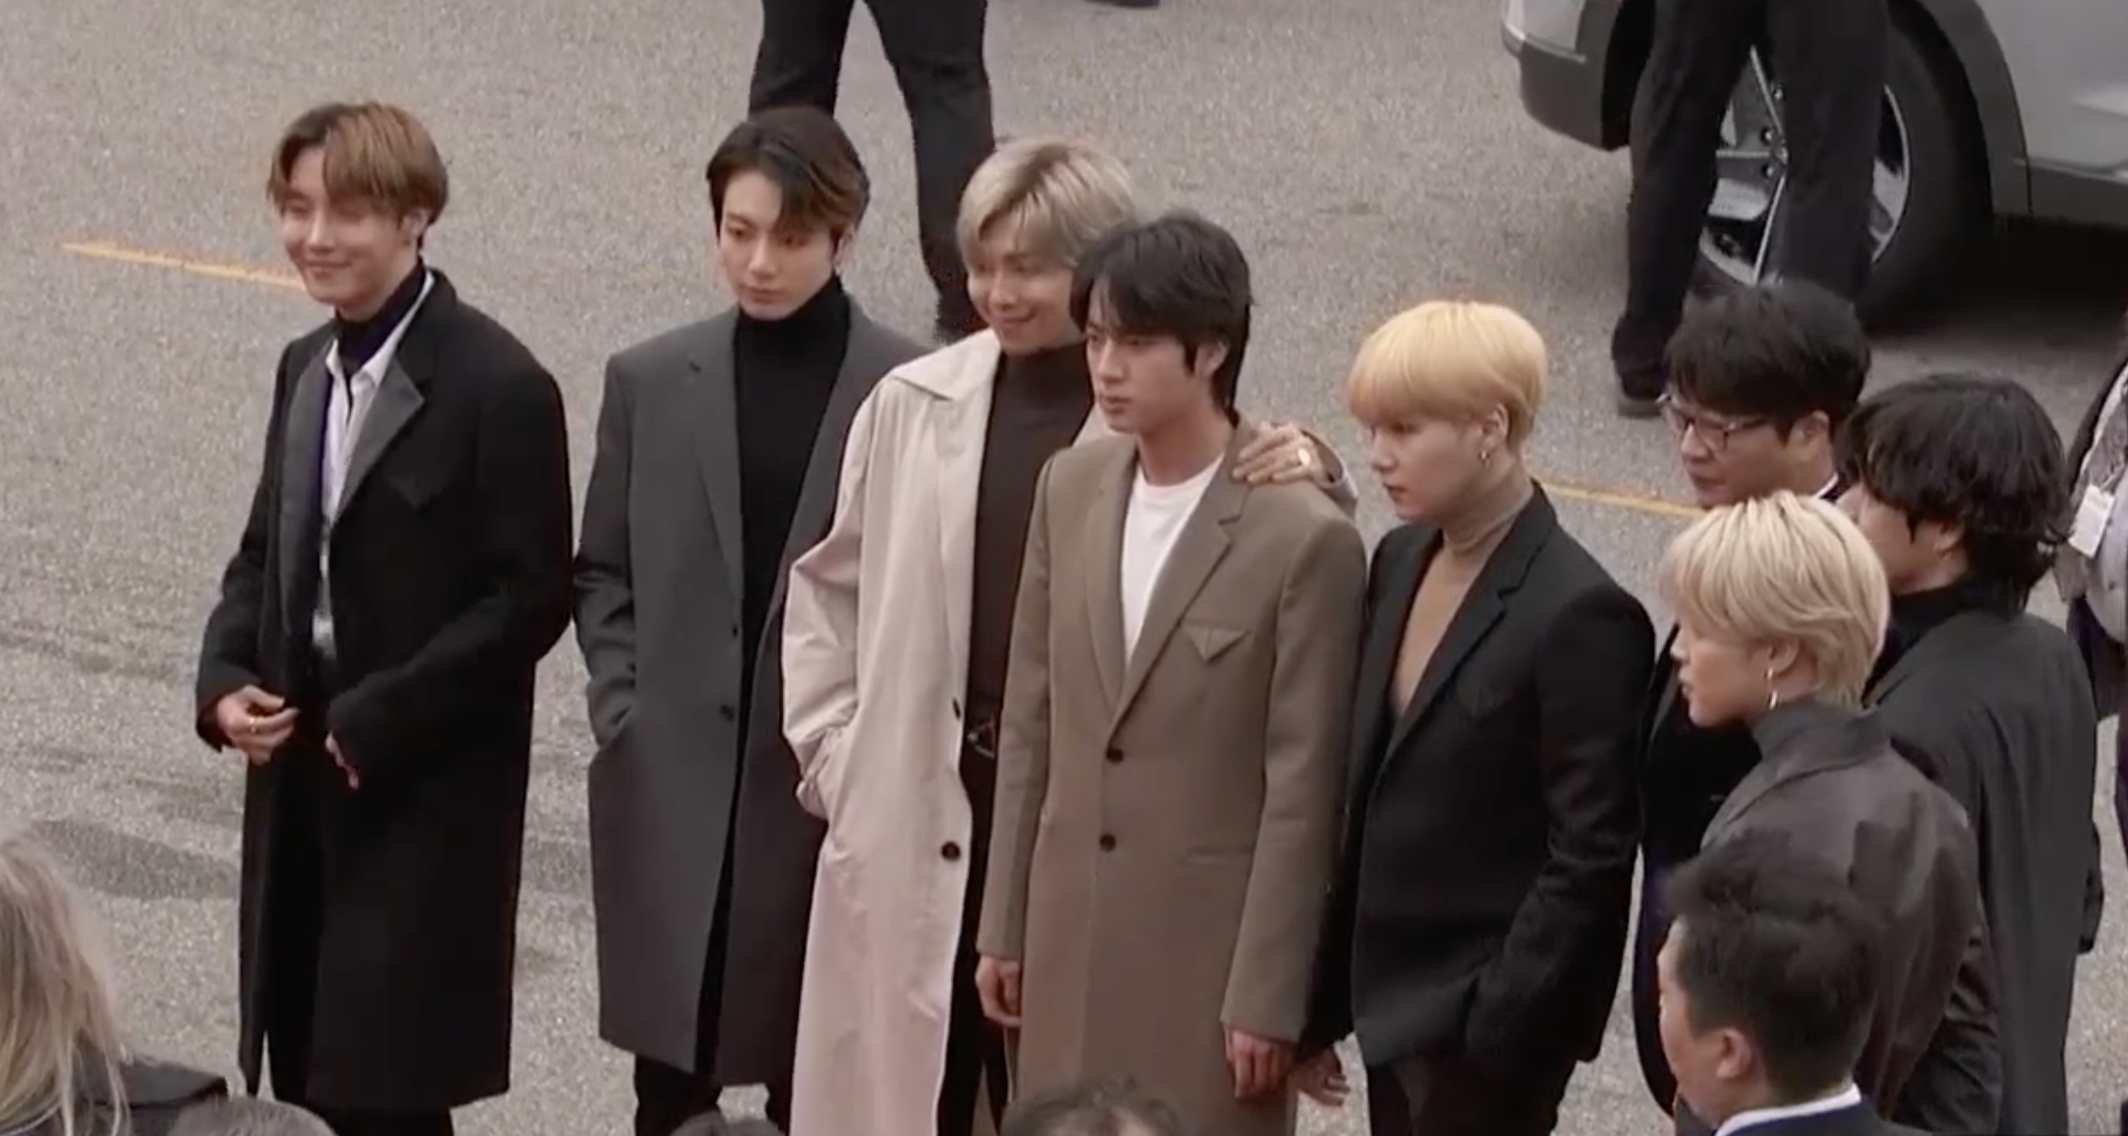 BTS Shows How to Do Menswear at the 2020 Grammys